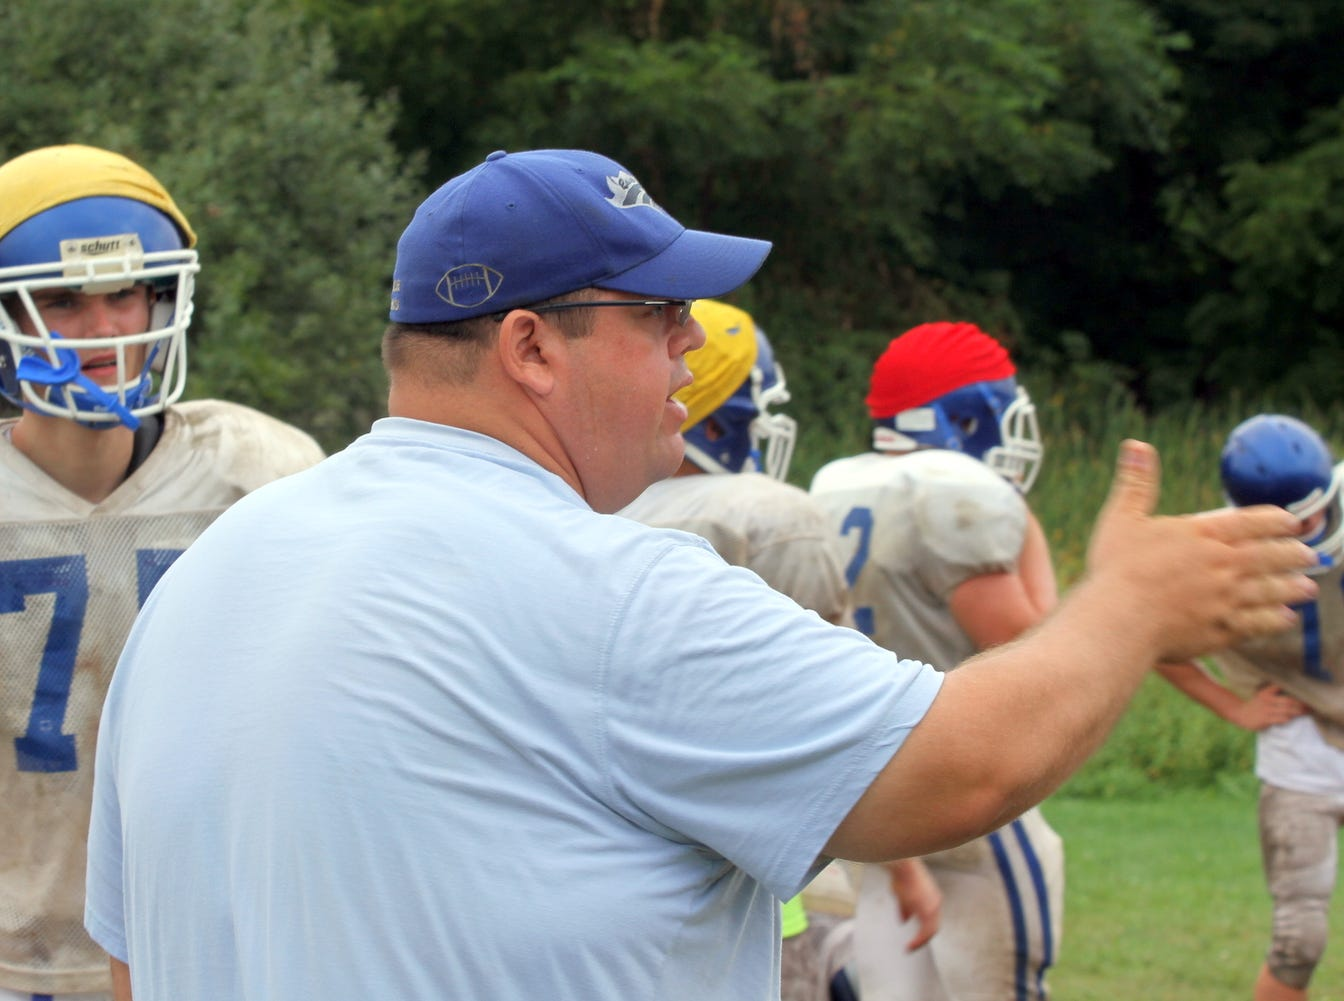 From 2013: Horseheads coach Damian Saks prepares the Blue Raiders for their season opener  today against Windsor.